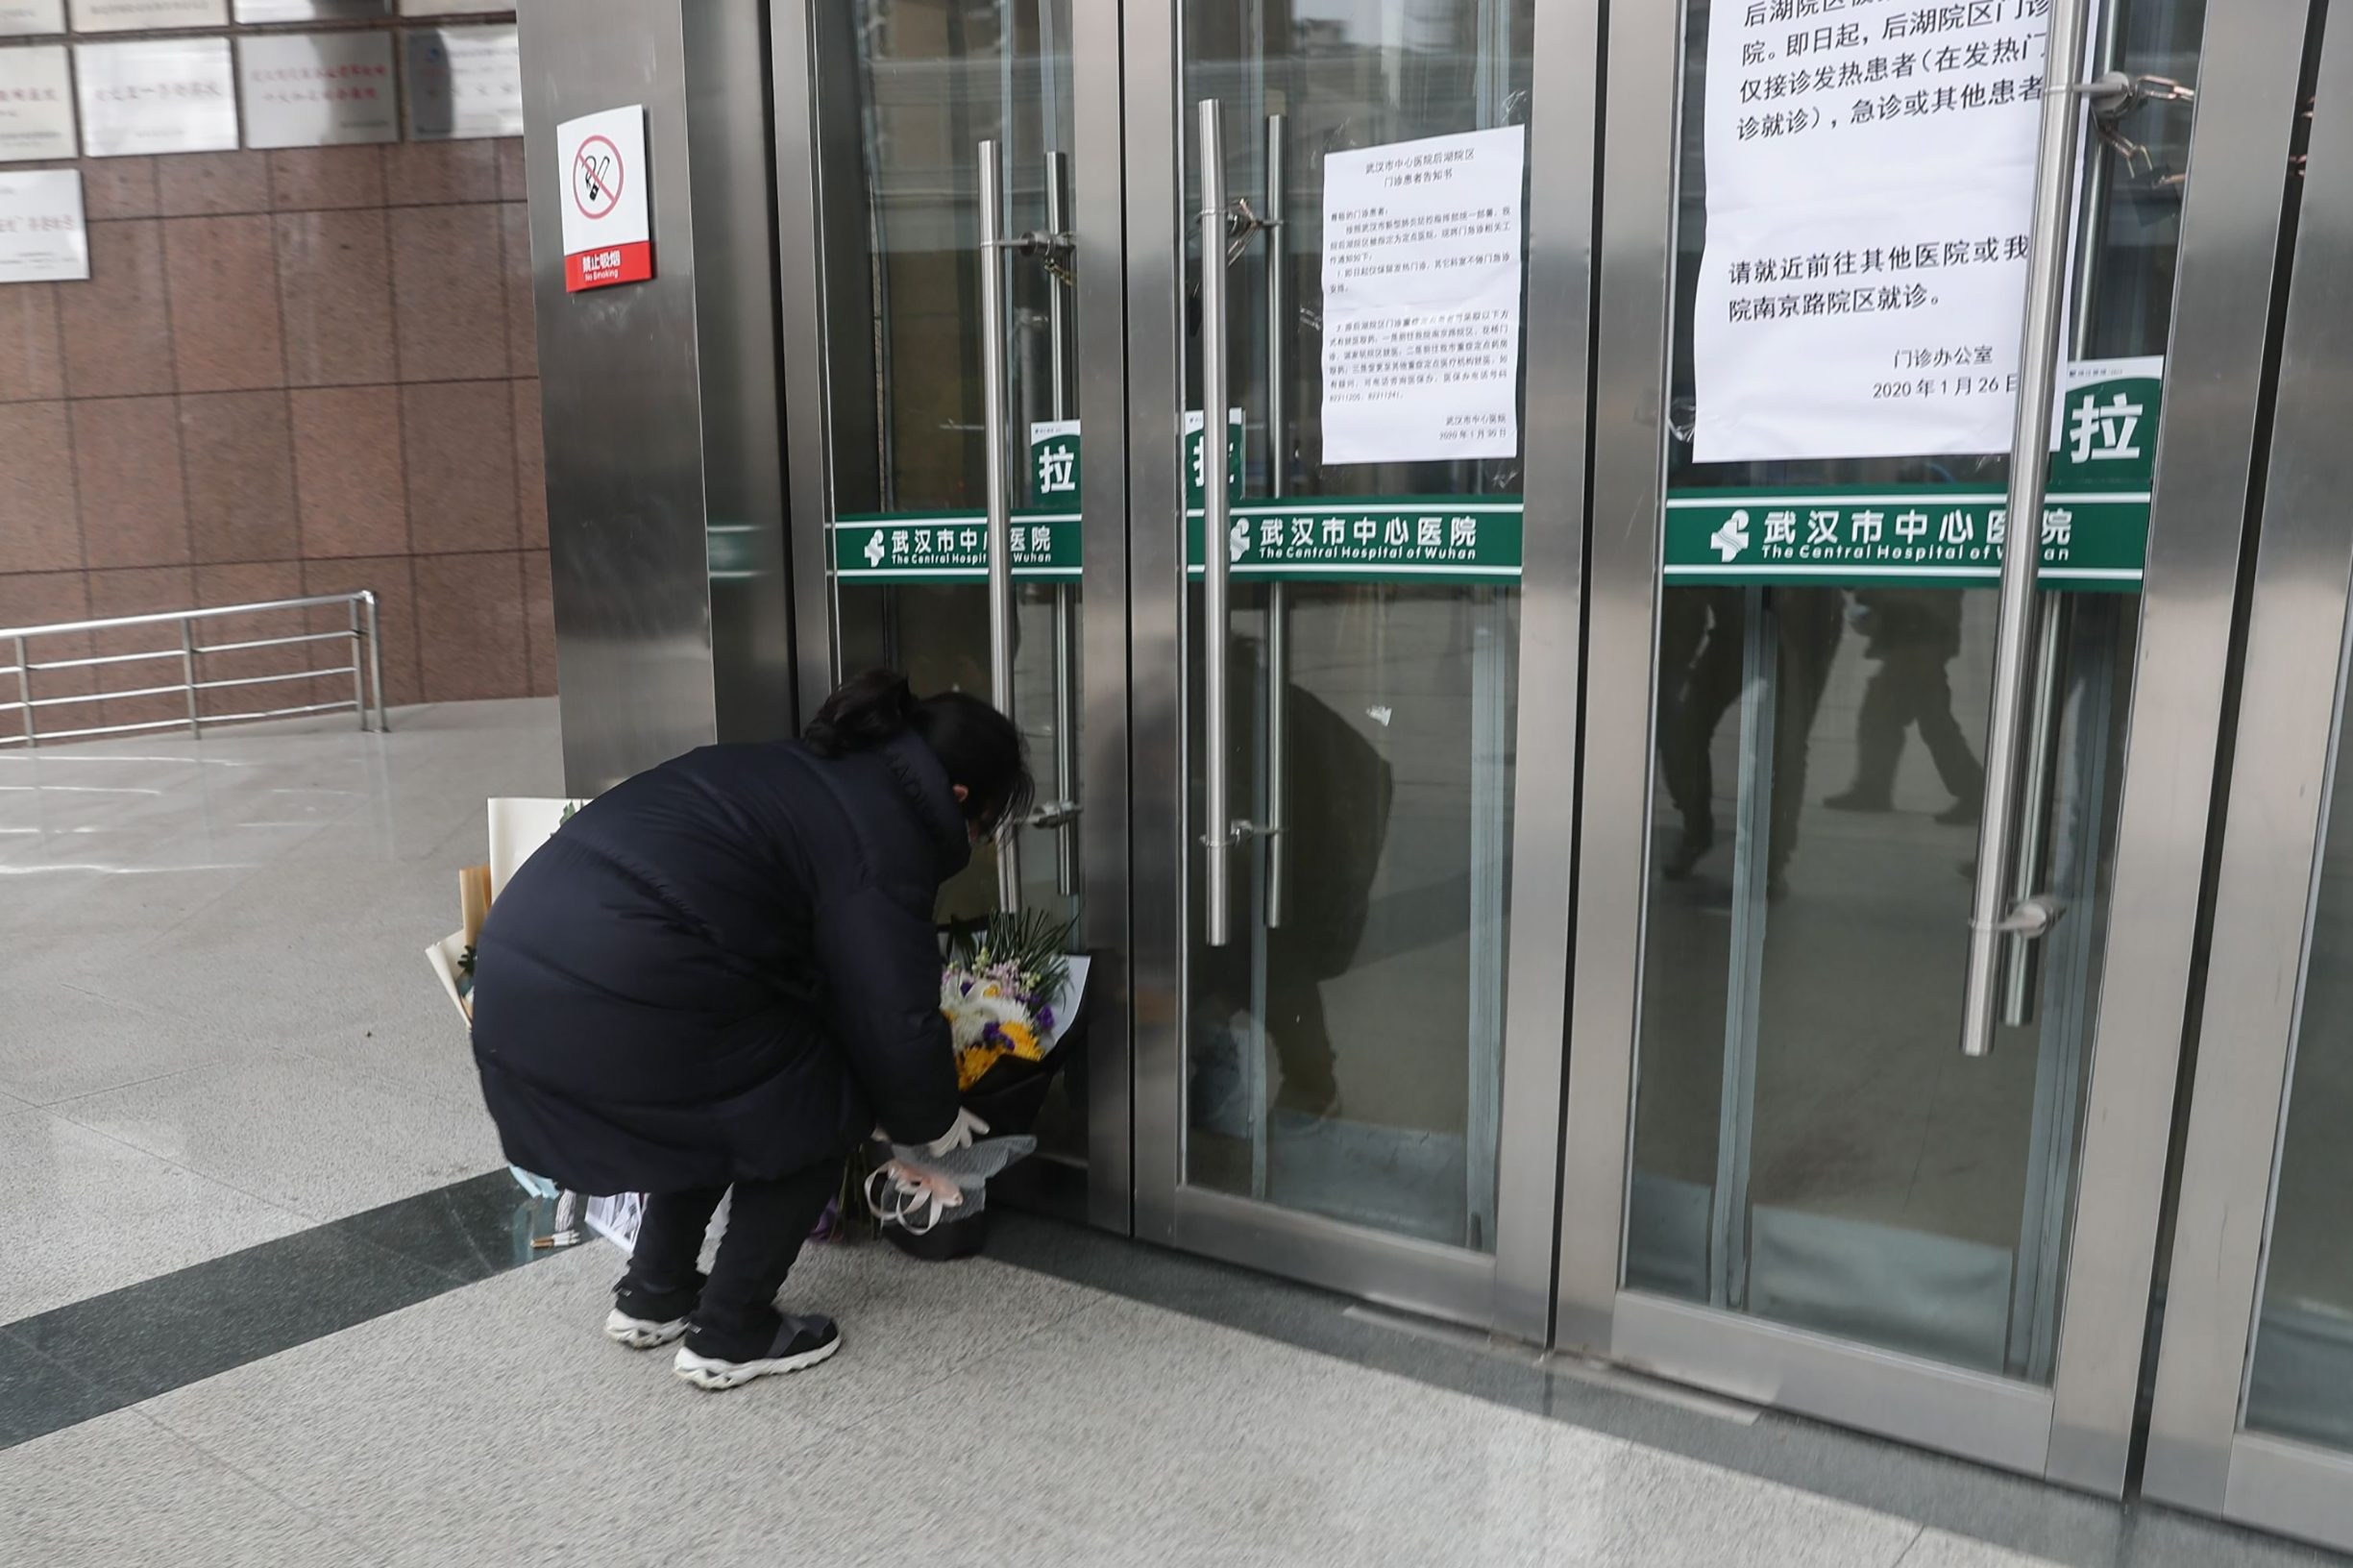 A resident places flowers for the late ophthalmologist Li Wenliang at the Houhu Branch of Wuhan Central Hospital in Wuhan in China's central Hubei province on February 7, 2020. - A Chinese doctor who was punished after raising the alarm about China's new coronavirus died from the pathogen on February 7, sparking an outpouring of grief and anger over a worsening crisis that has now killed more than 630 people. (Photo by STR / AFP) / China OUT